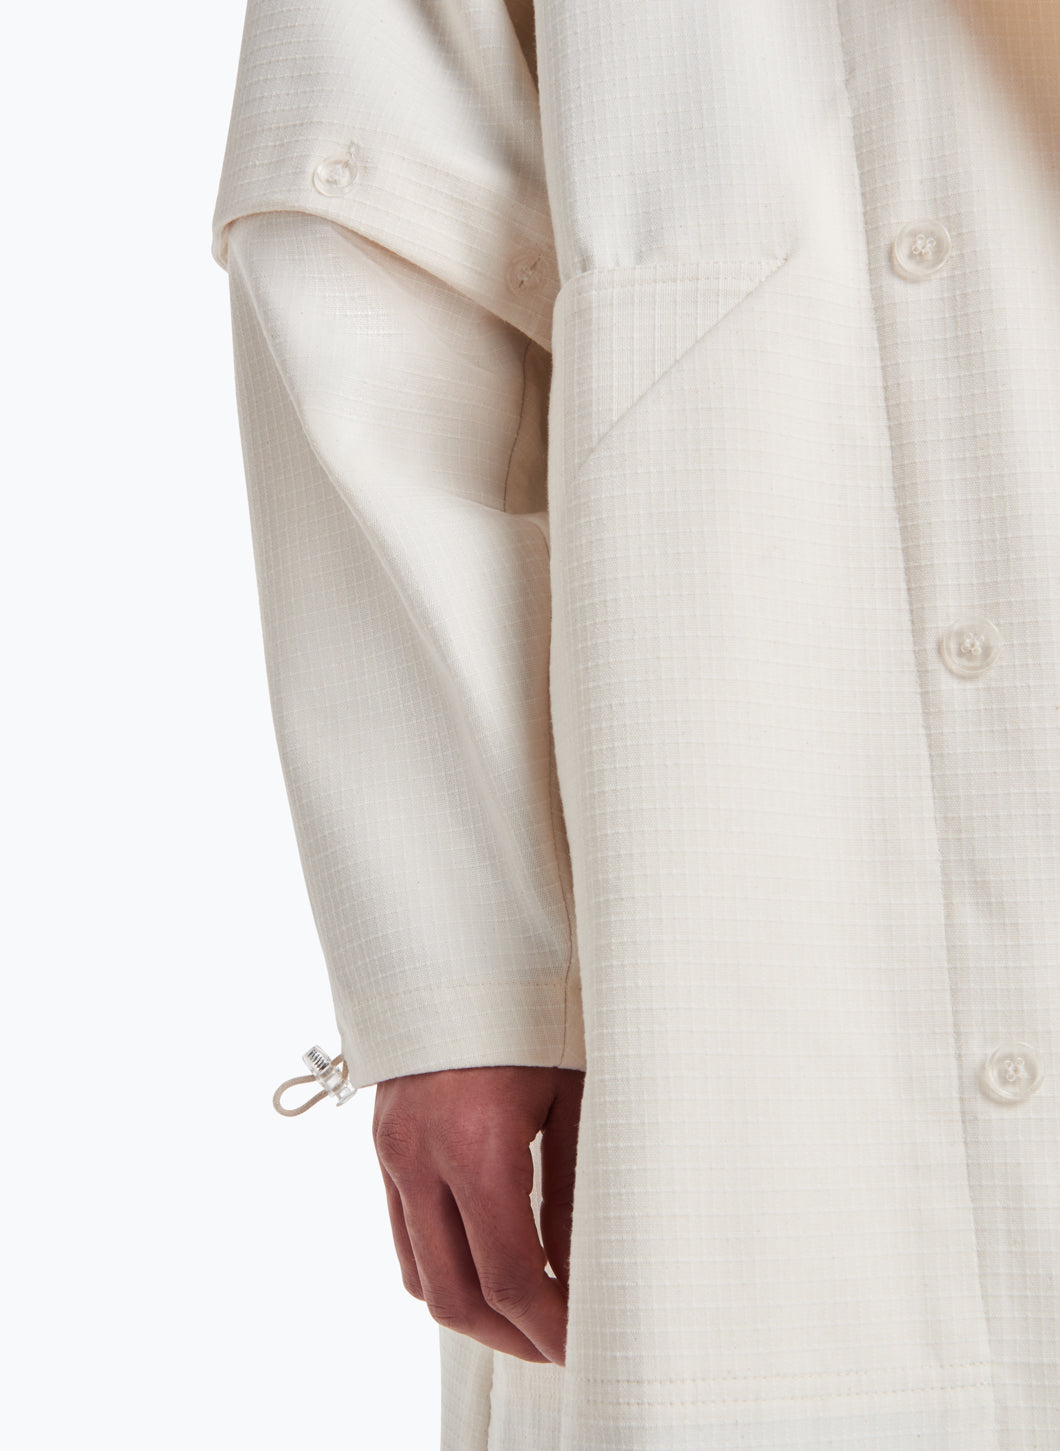 Hooded Overcoat in White Cotton Ripstop